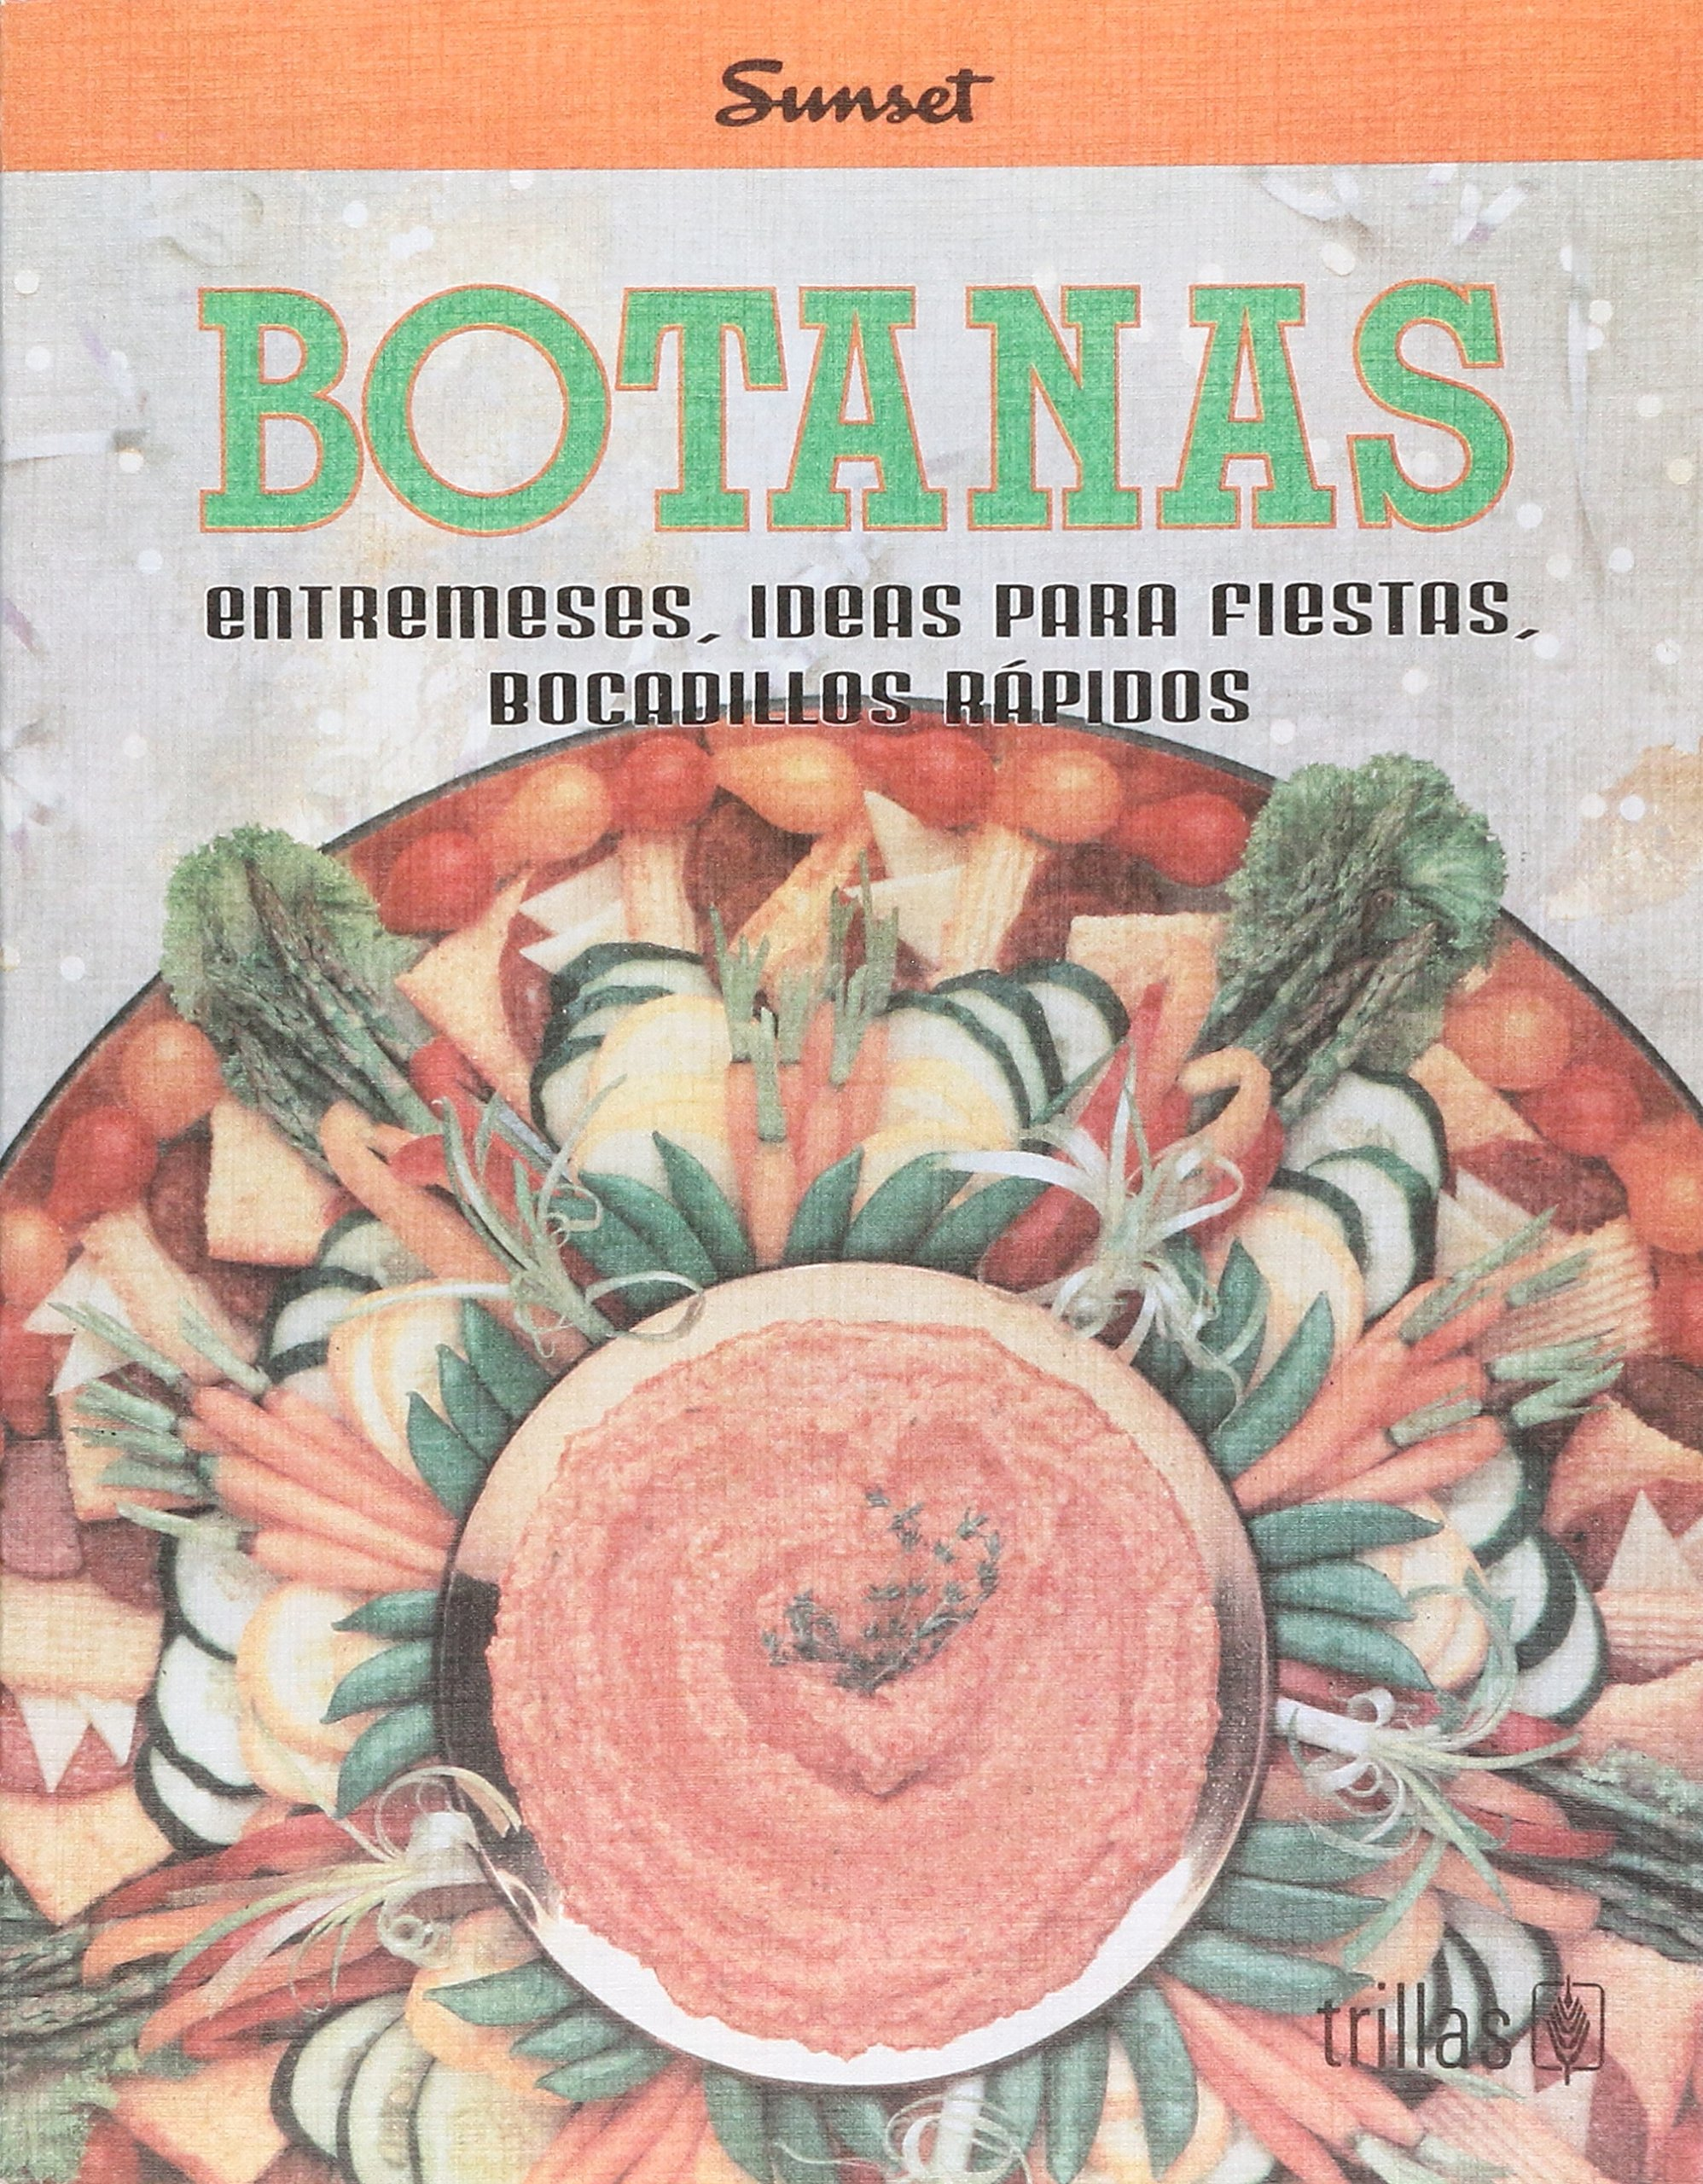 Botanas Entremeses Bocadillos Rapidos: TRILLAS SUNSET: 9789682452772: Amazon.com: Books